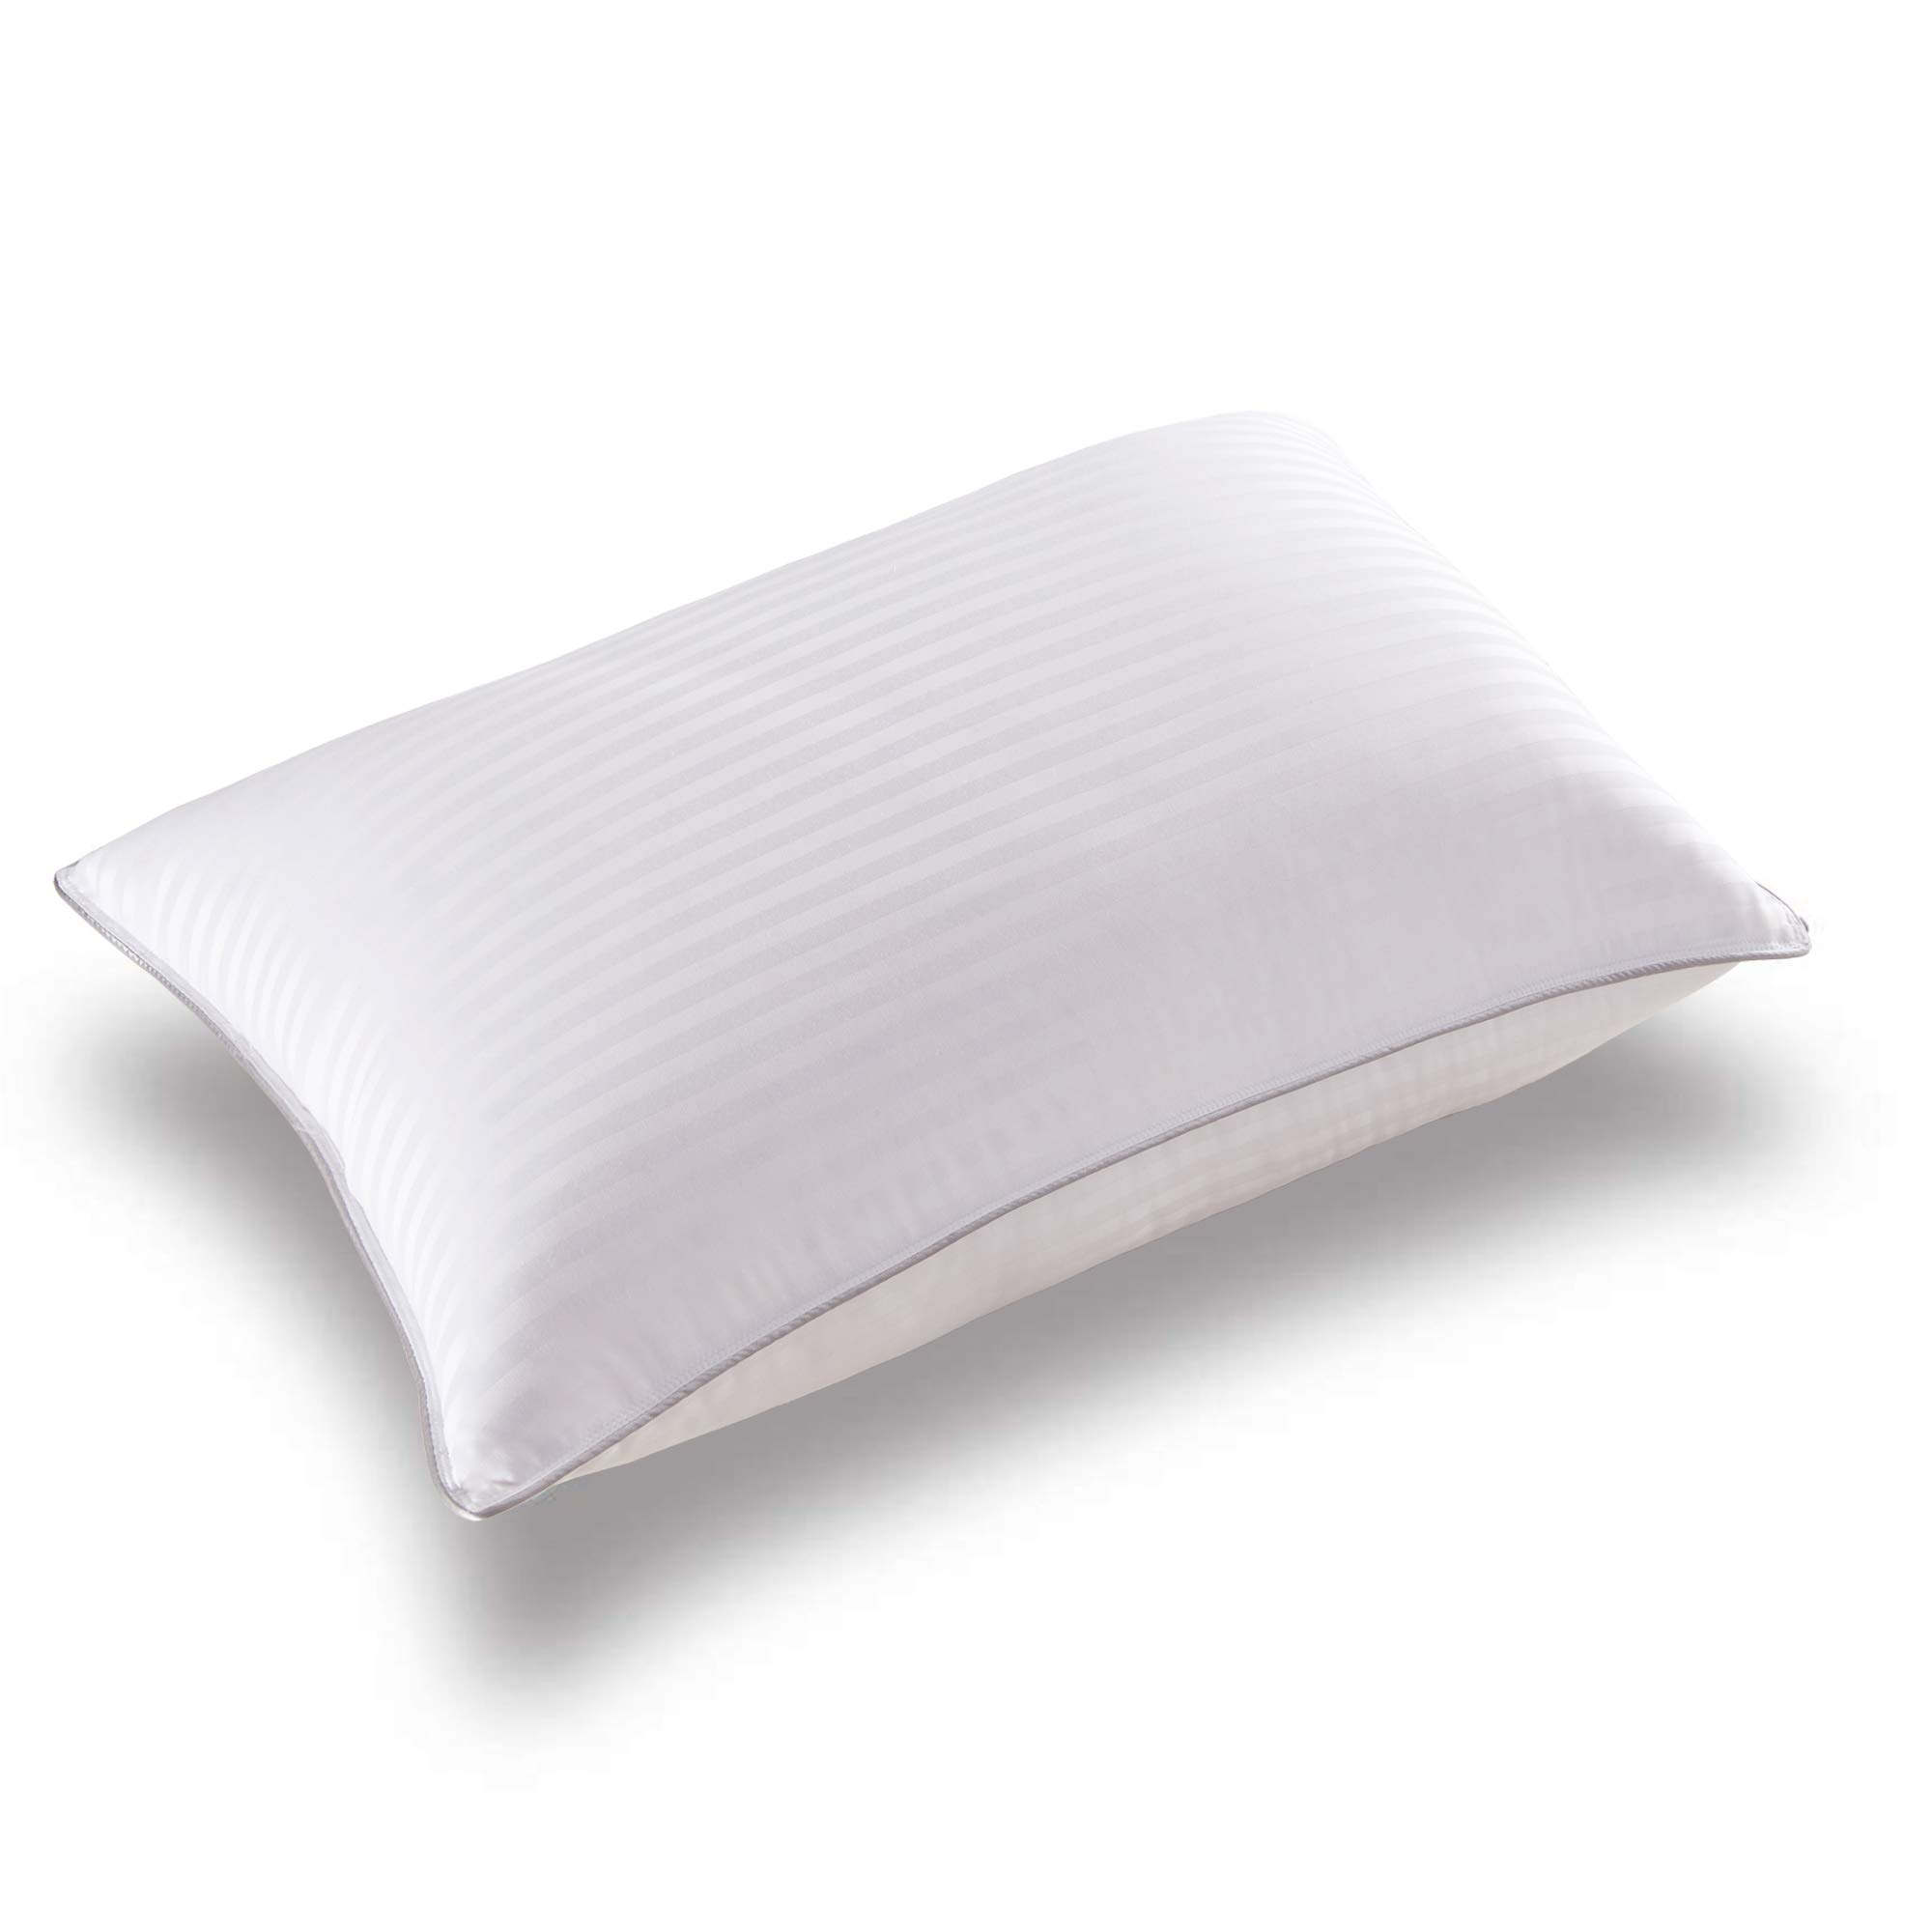 Basic Beyond Down Alternative Bed Pillow - Hotel Collection Super Soft Firm Pillow for Sleeping with Hypoallergenic Bamboo Materials Fill, Standard Size